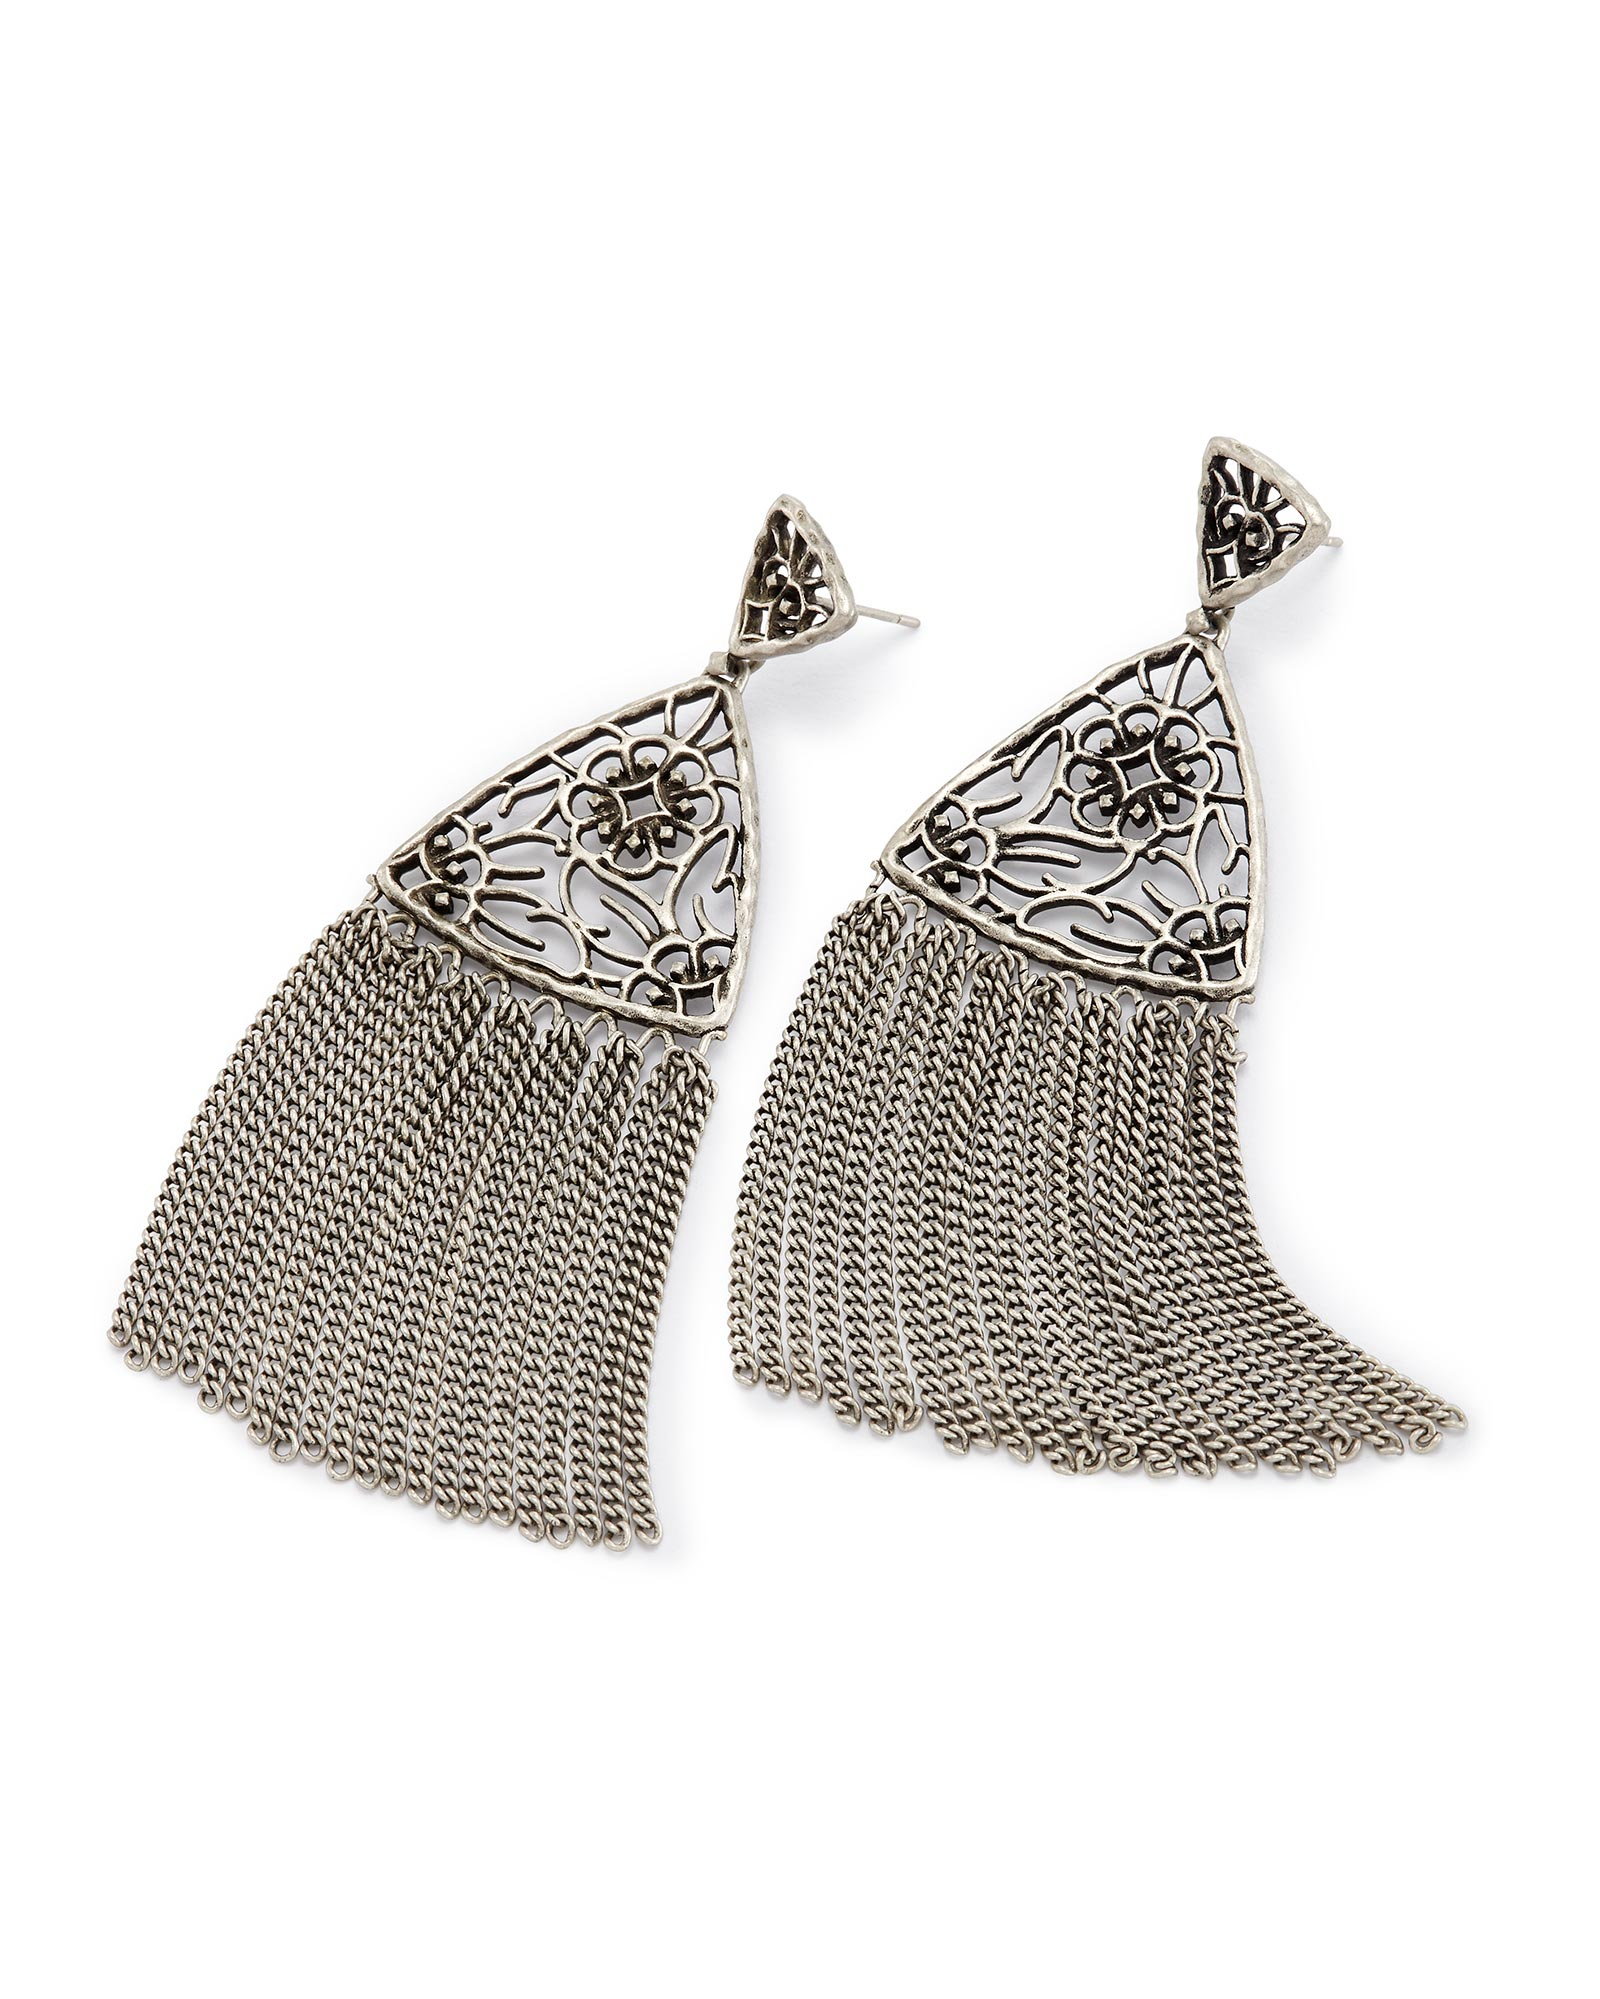 Ana Statement Earrings in Antique Silver